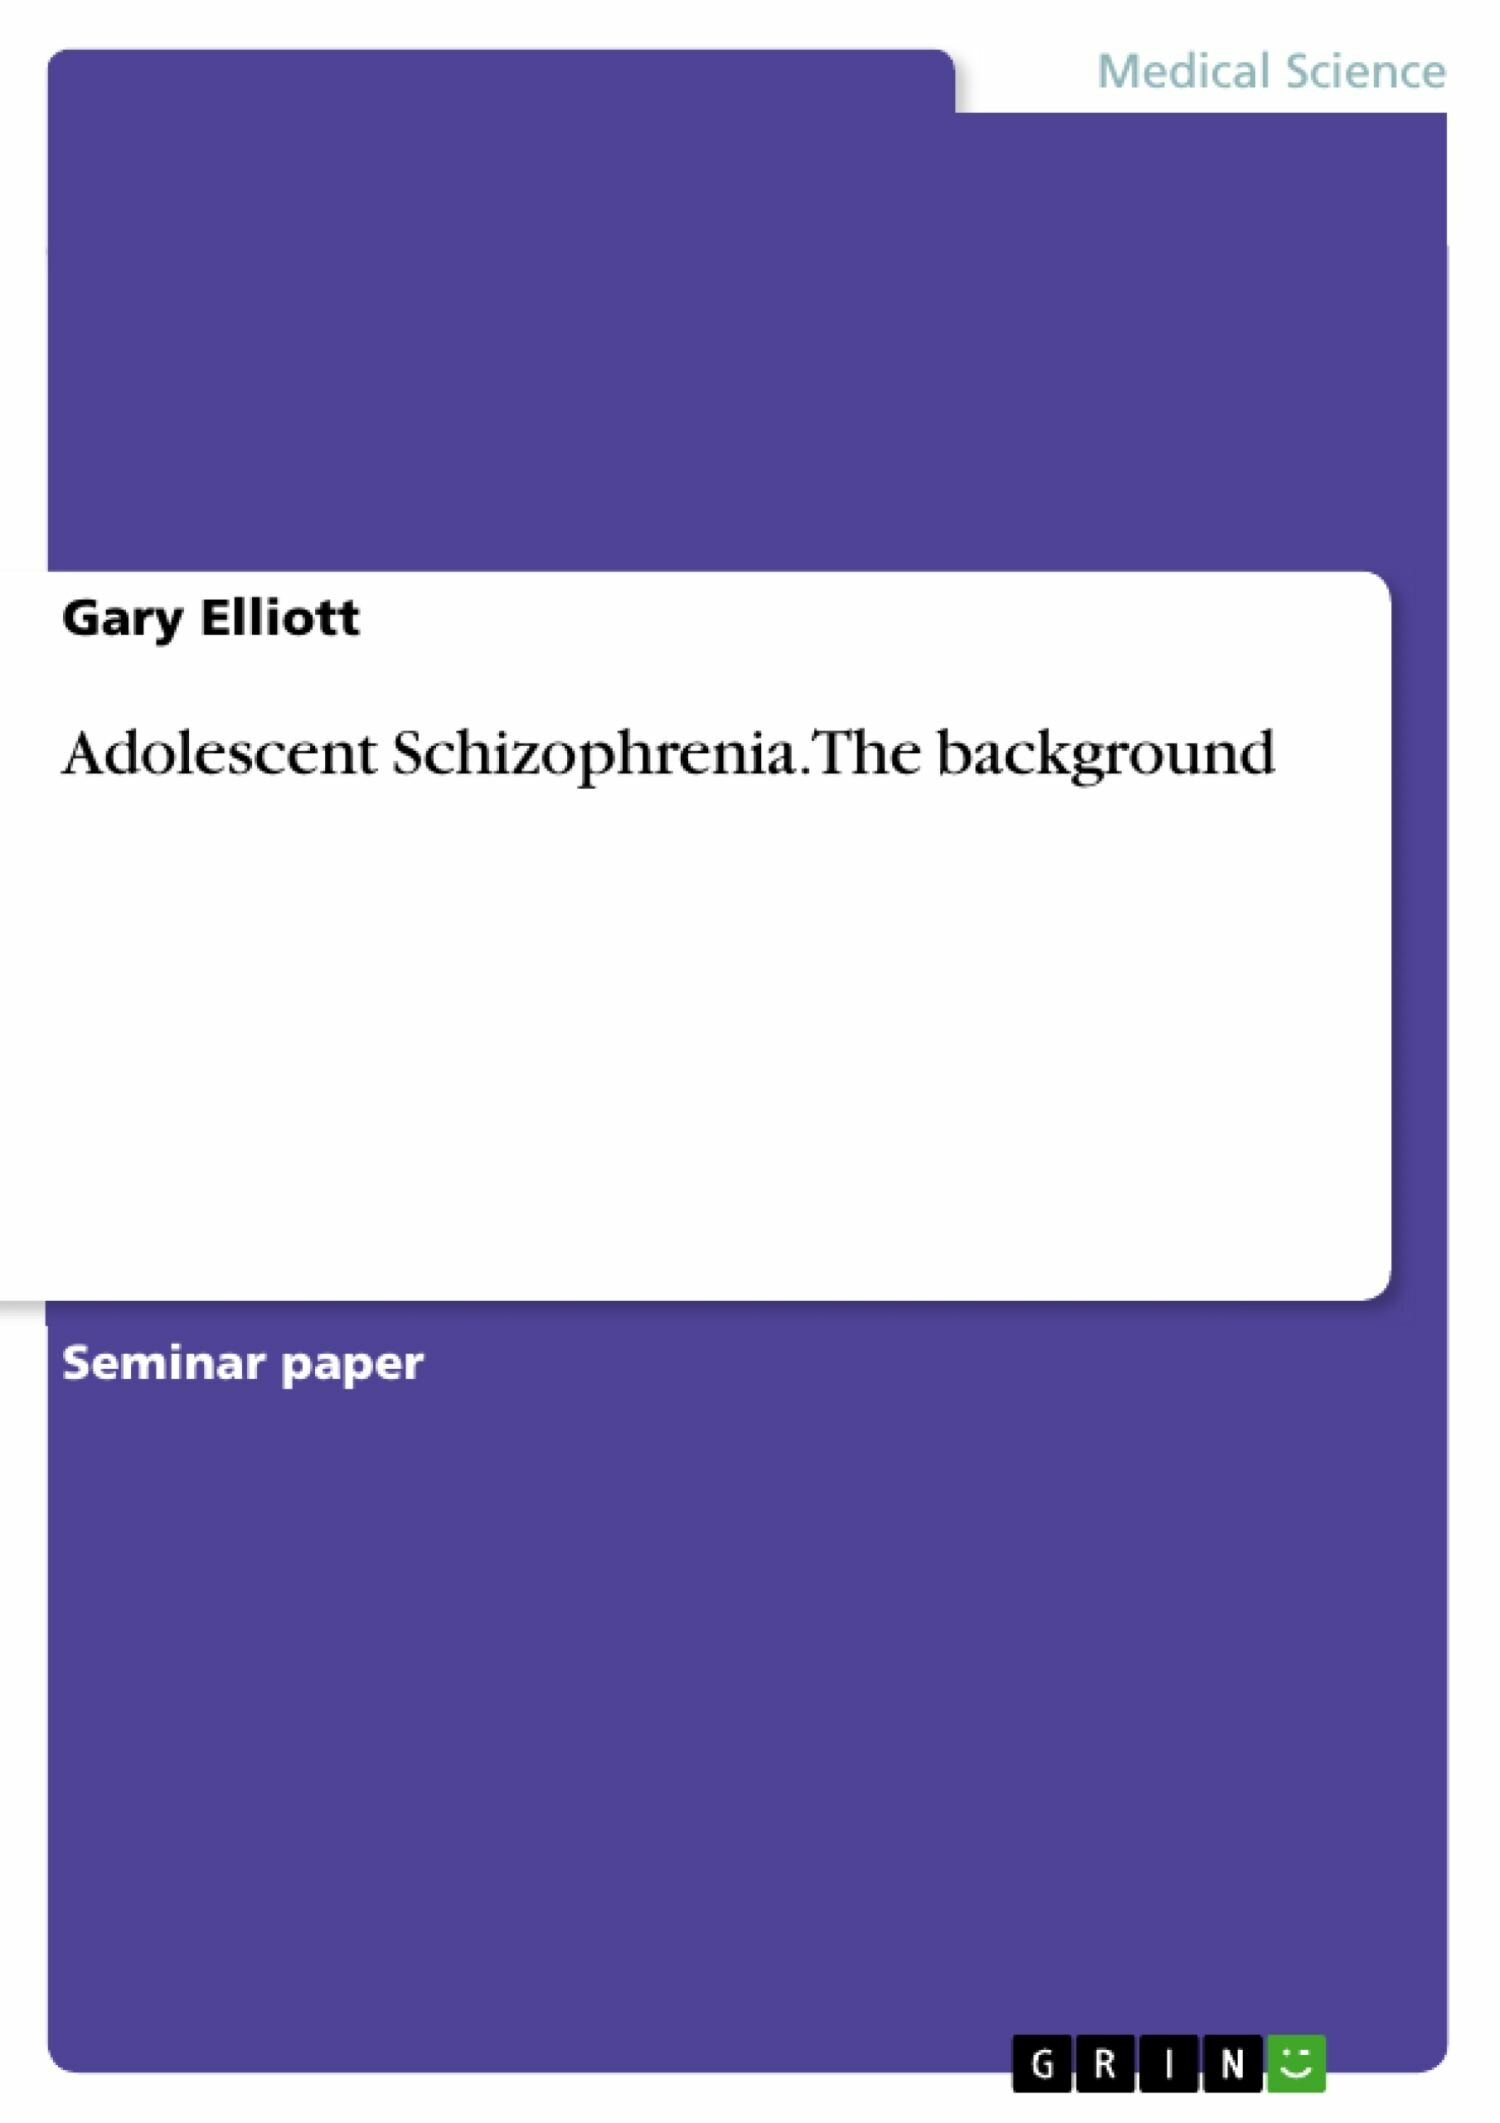 Adolescent Schizophrenia.  The background